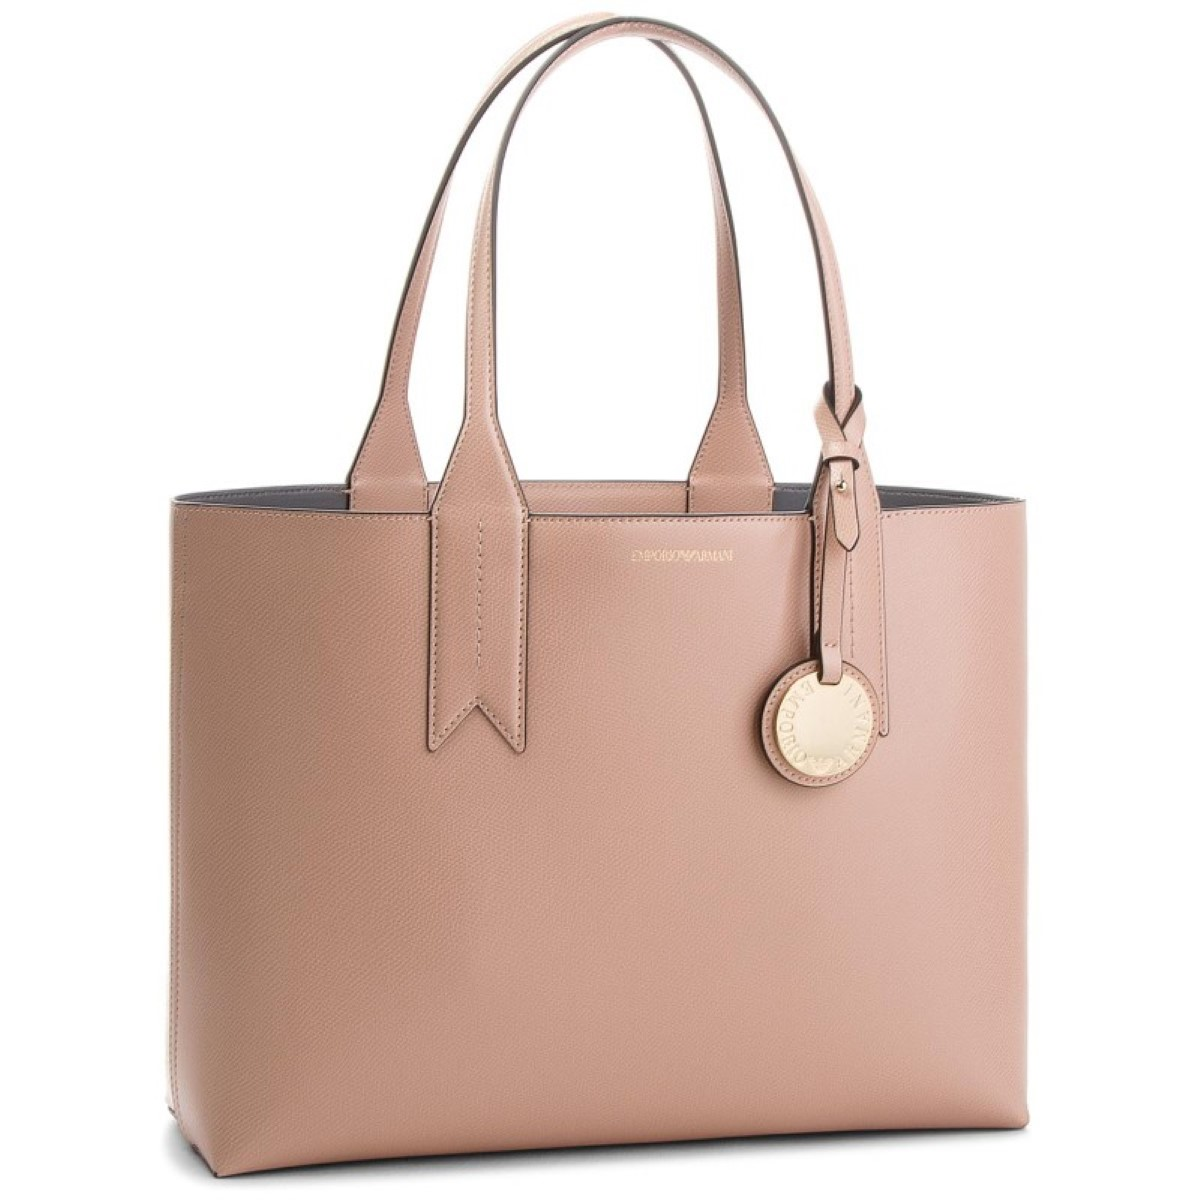 WOMEN'S SHOPPING BAG 2210150